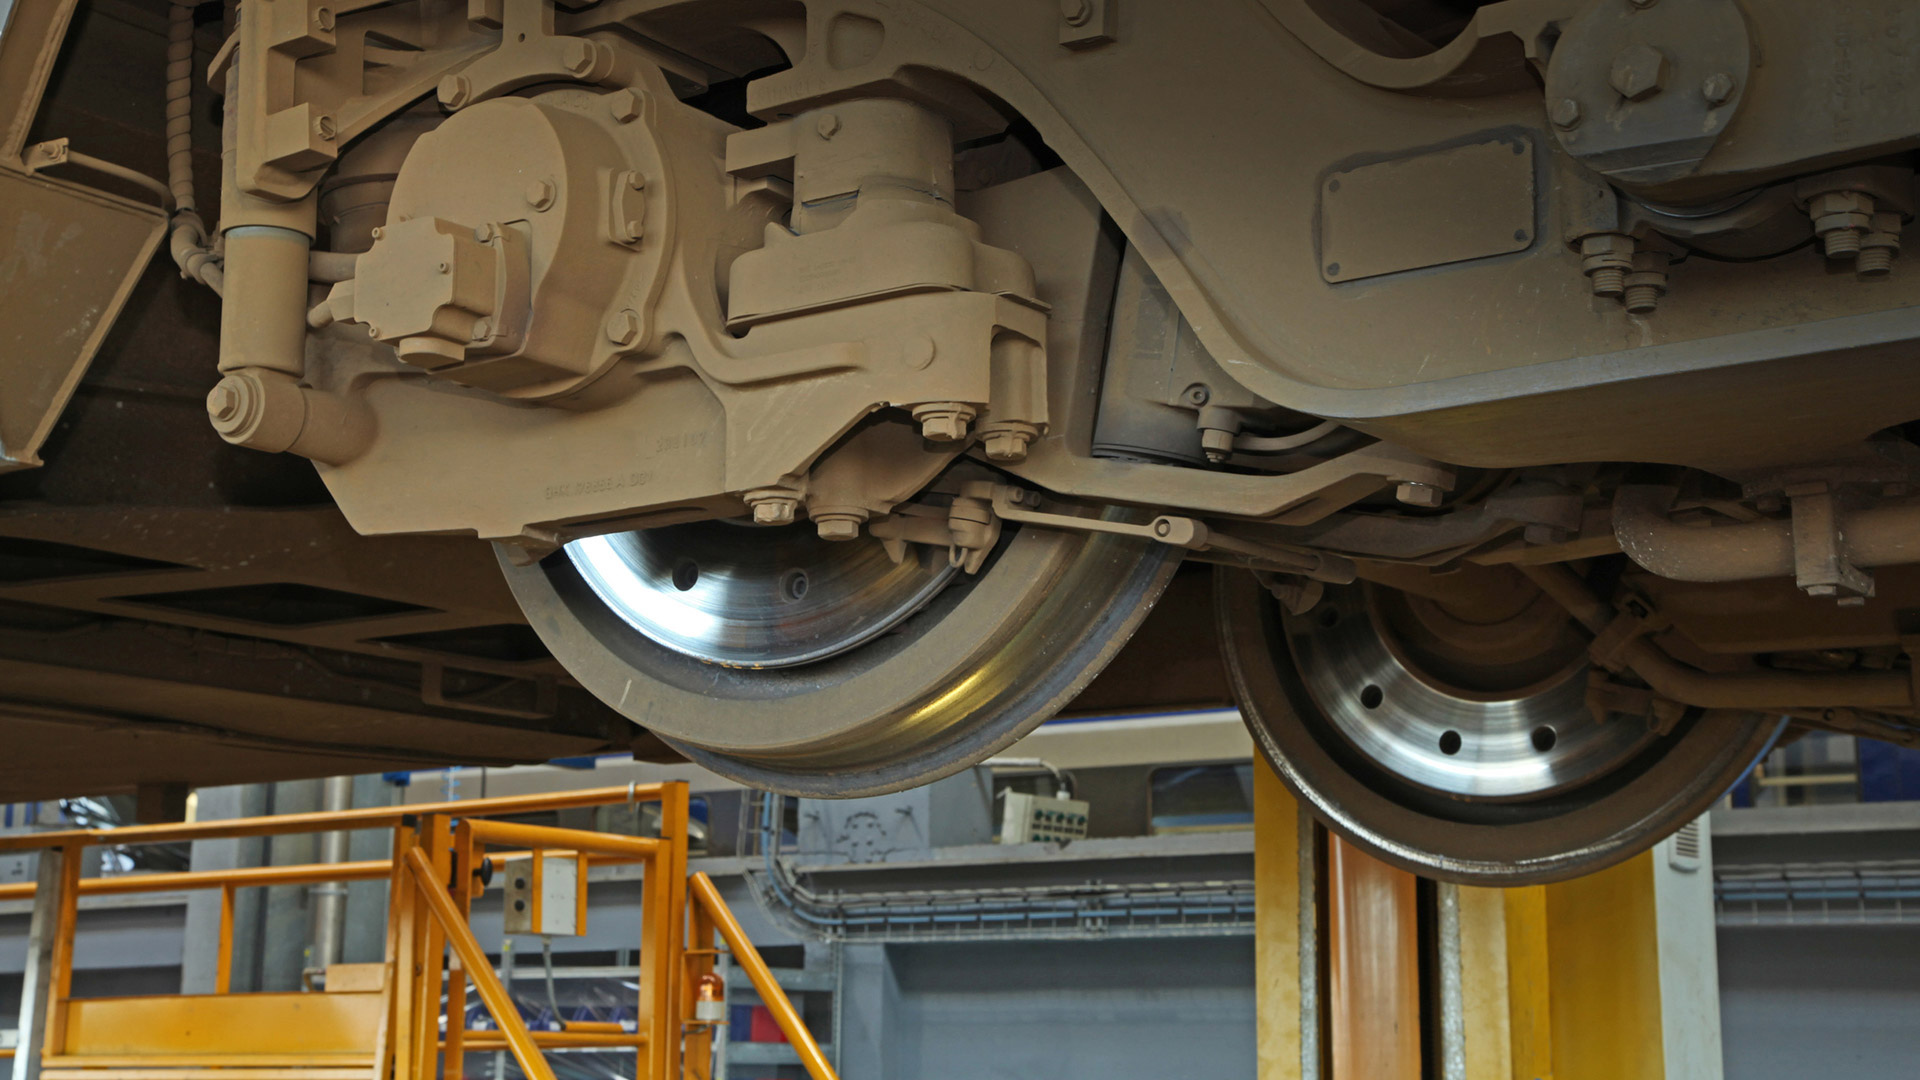 Detail shot of the train bogie stands for Predictive Maintenance